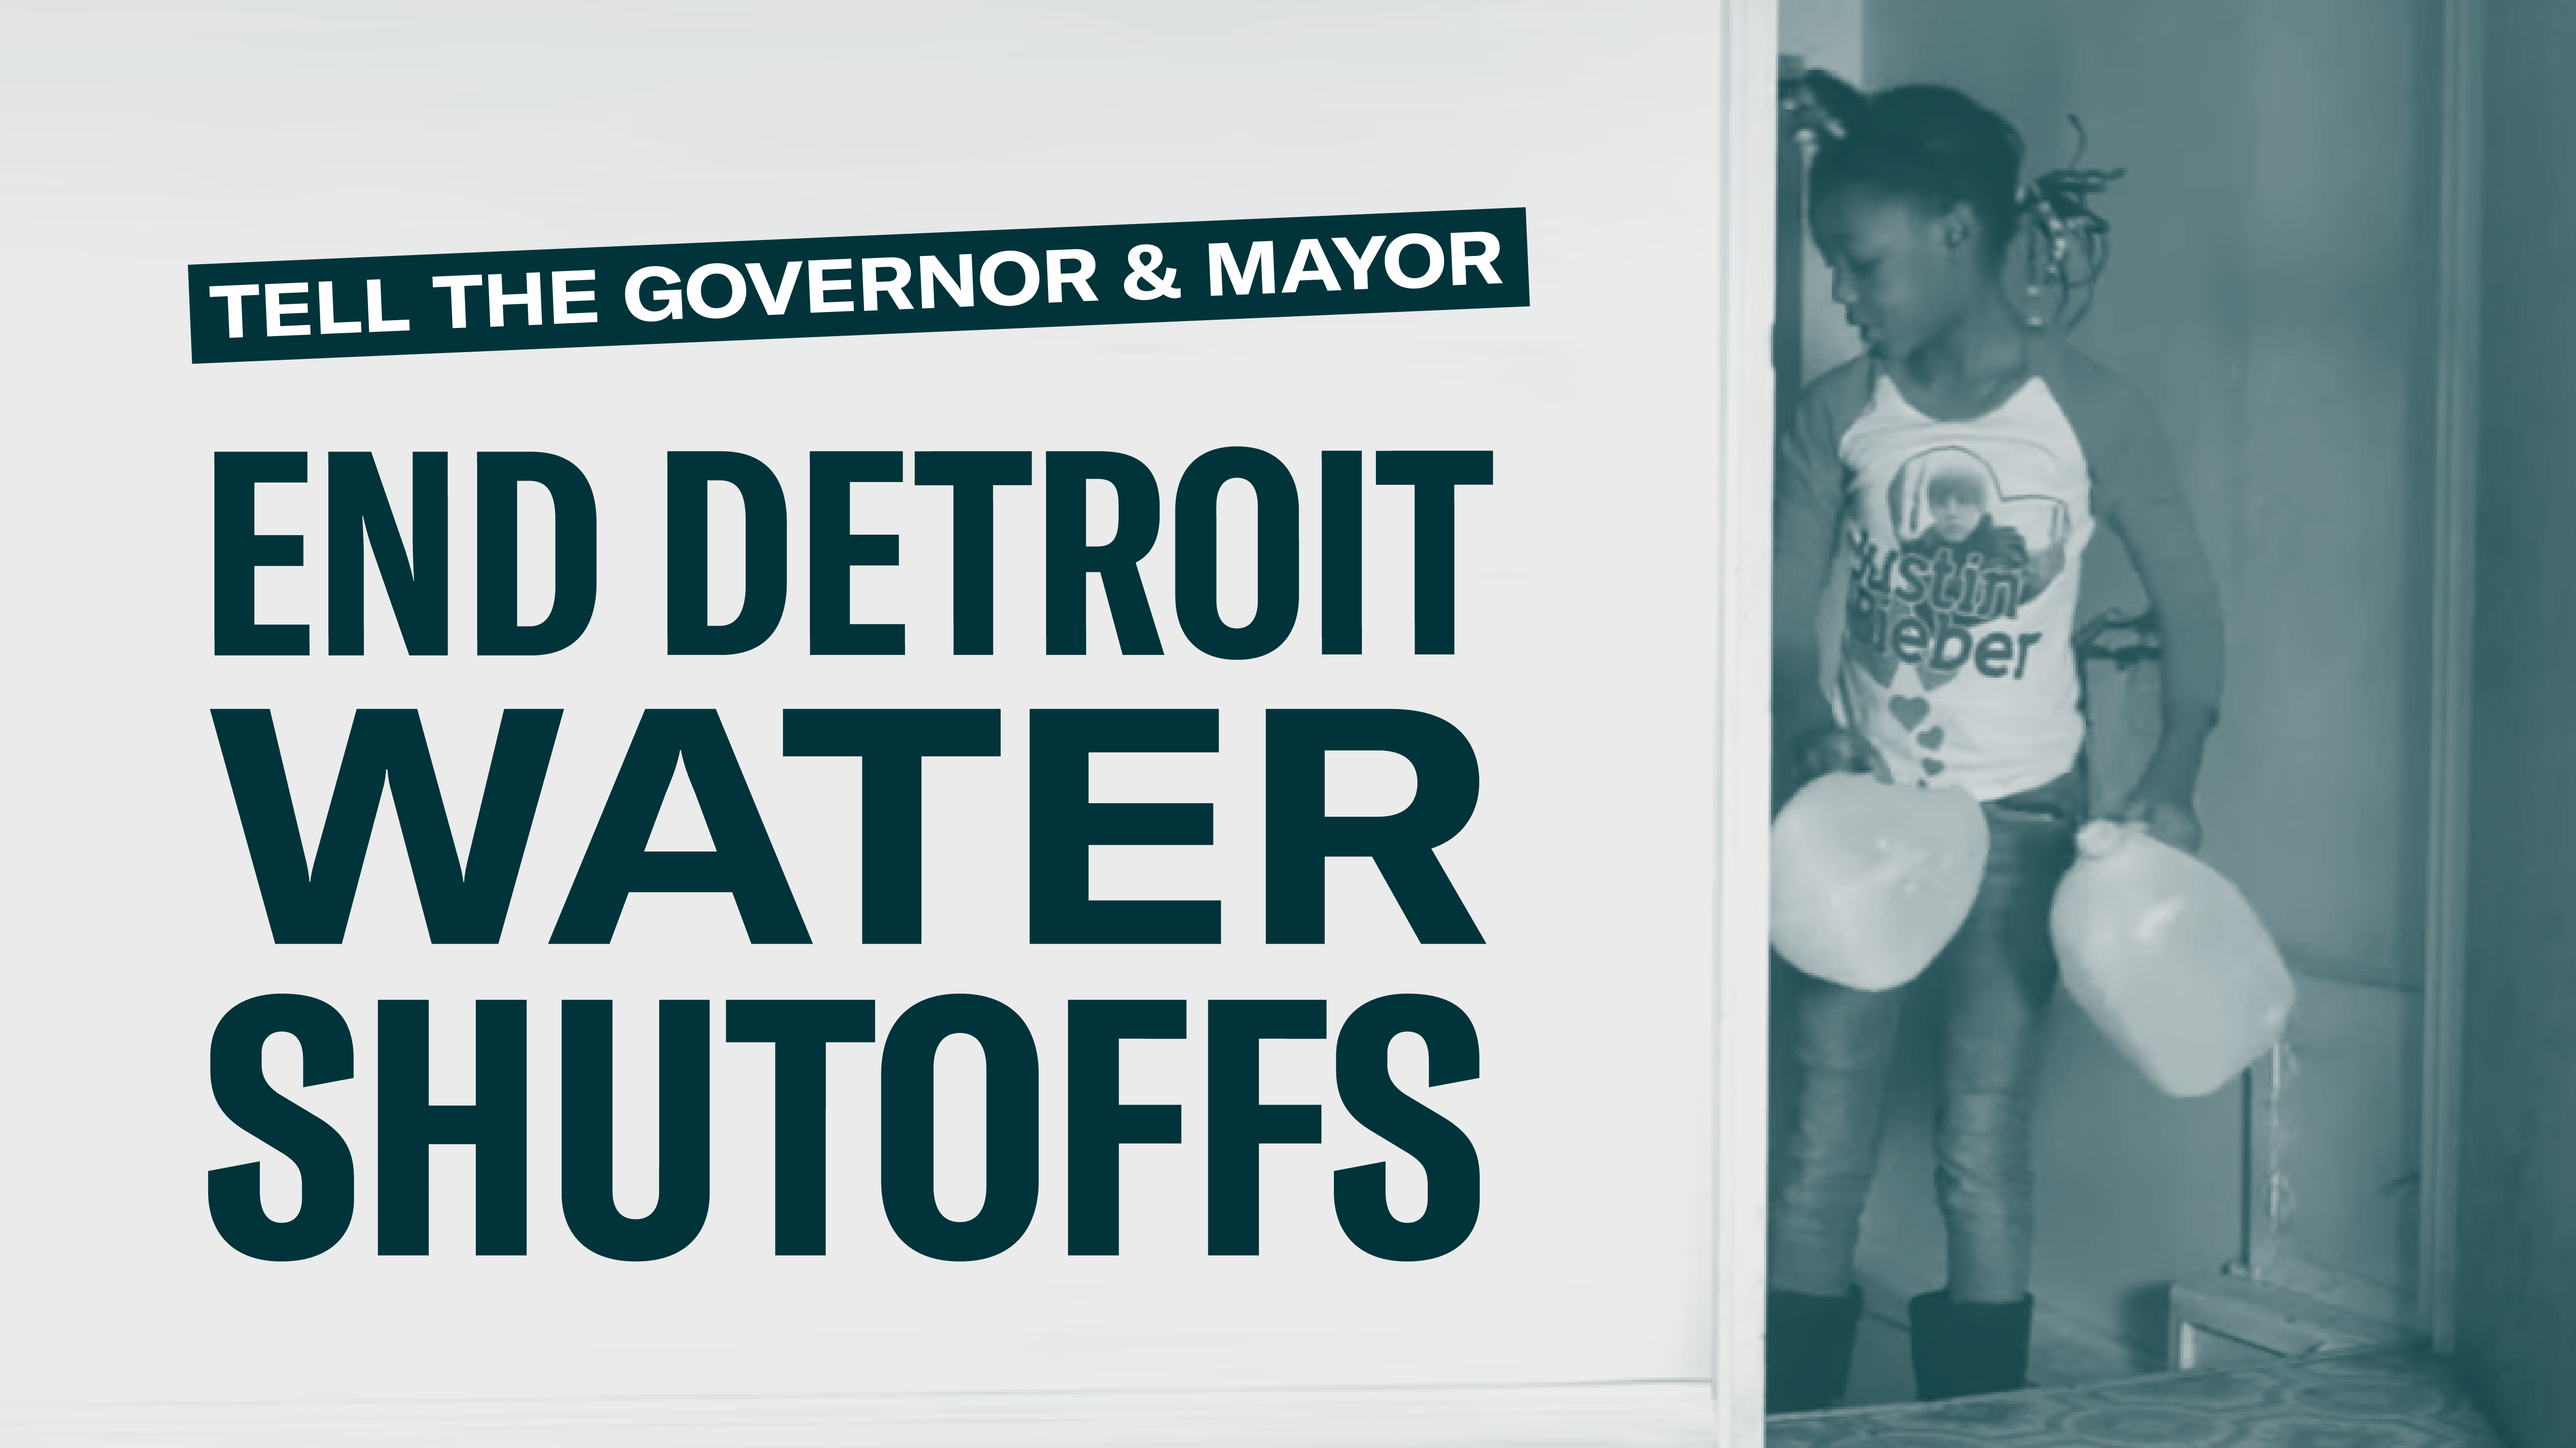 Tell the Governor and Mayor to End Detroit Water Shutoffs